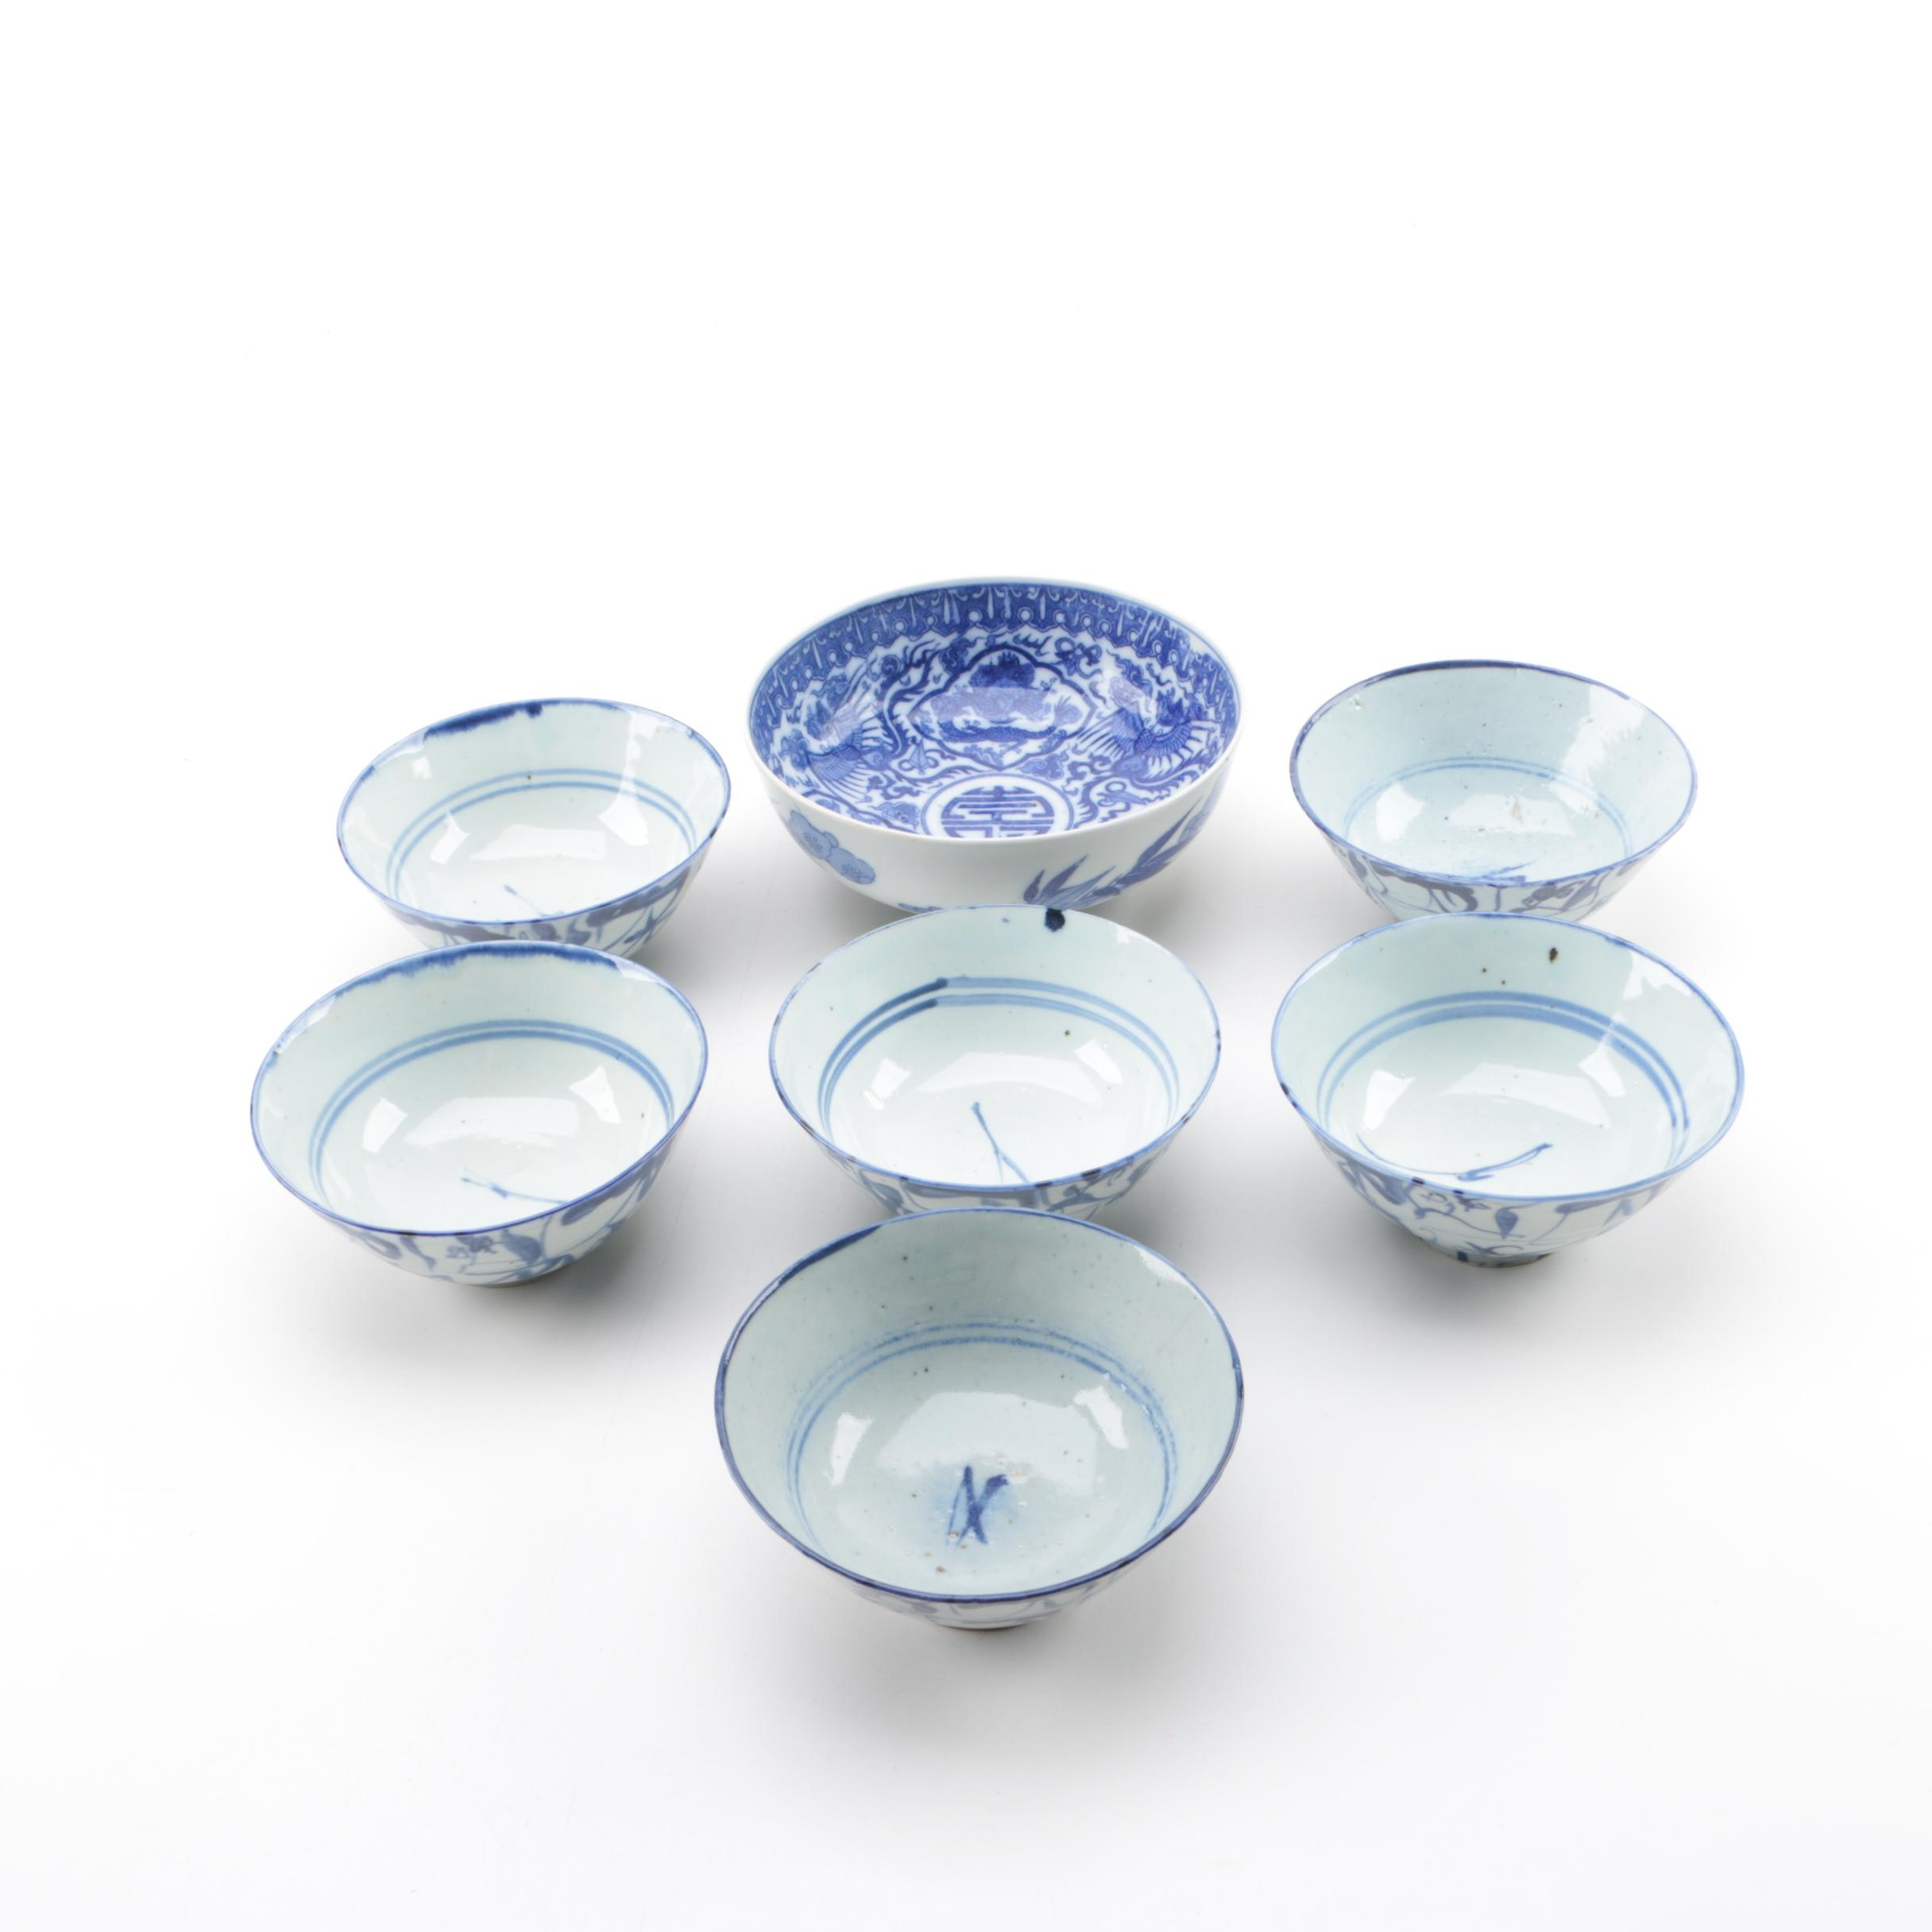 Hand-painted Chinese Porcelain Bowls